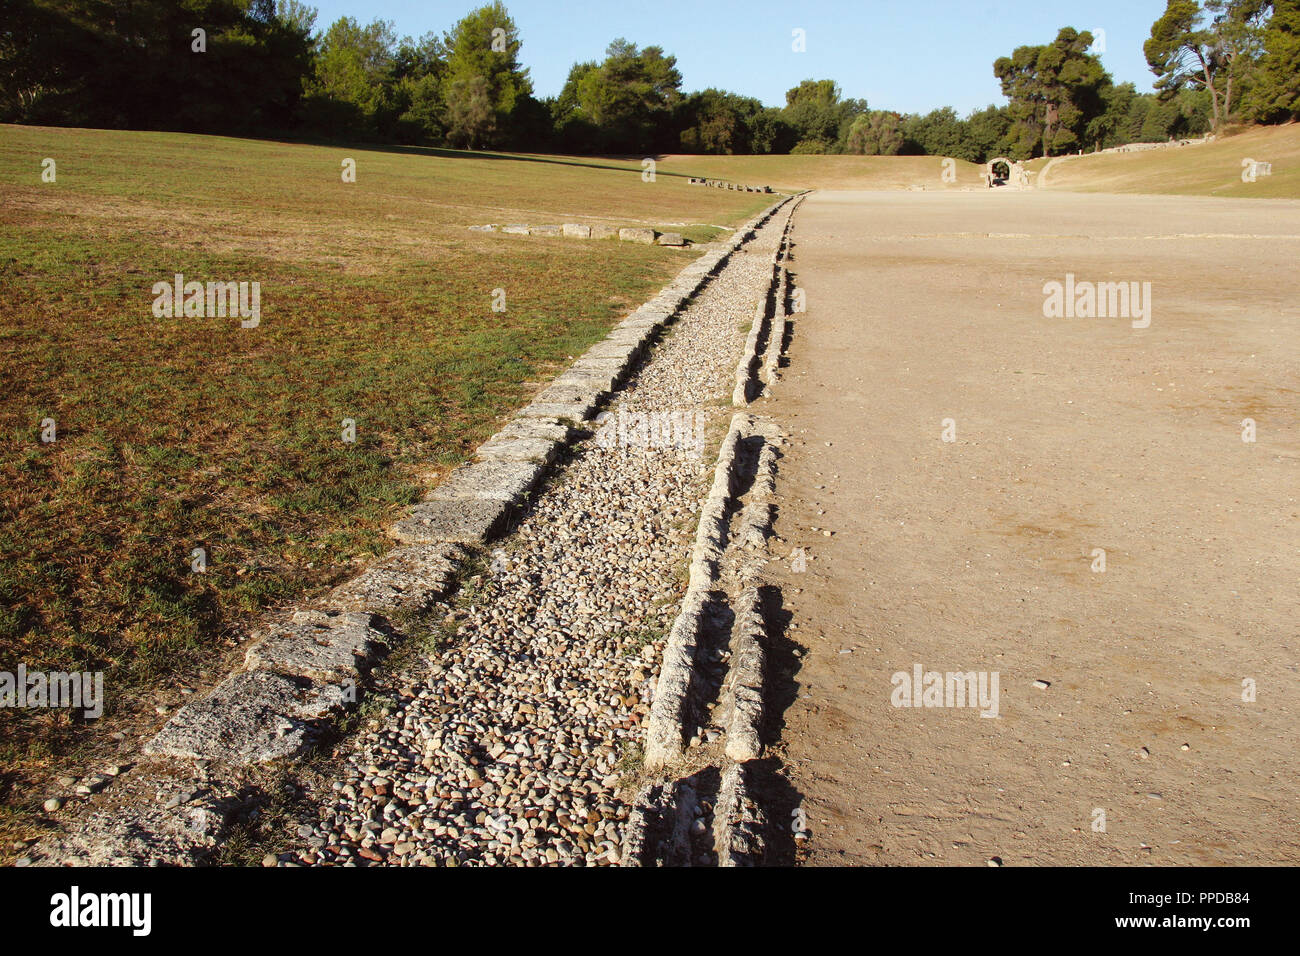 Greek Art. Sanctuary of Olympia. Panorama of the ancient Olympic Stadium. Detail of the water channel. The east of archaelogical site.  Elis. Peloponesse. Greece. Europe. - Stock Image